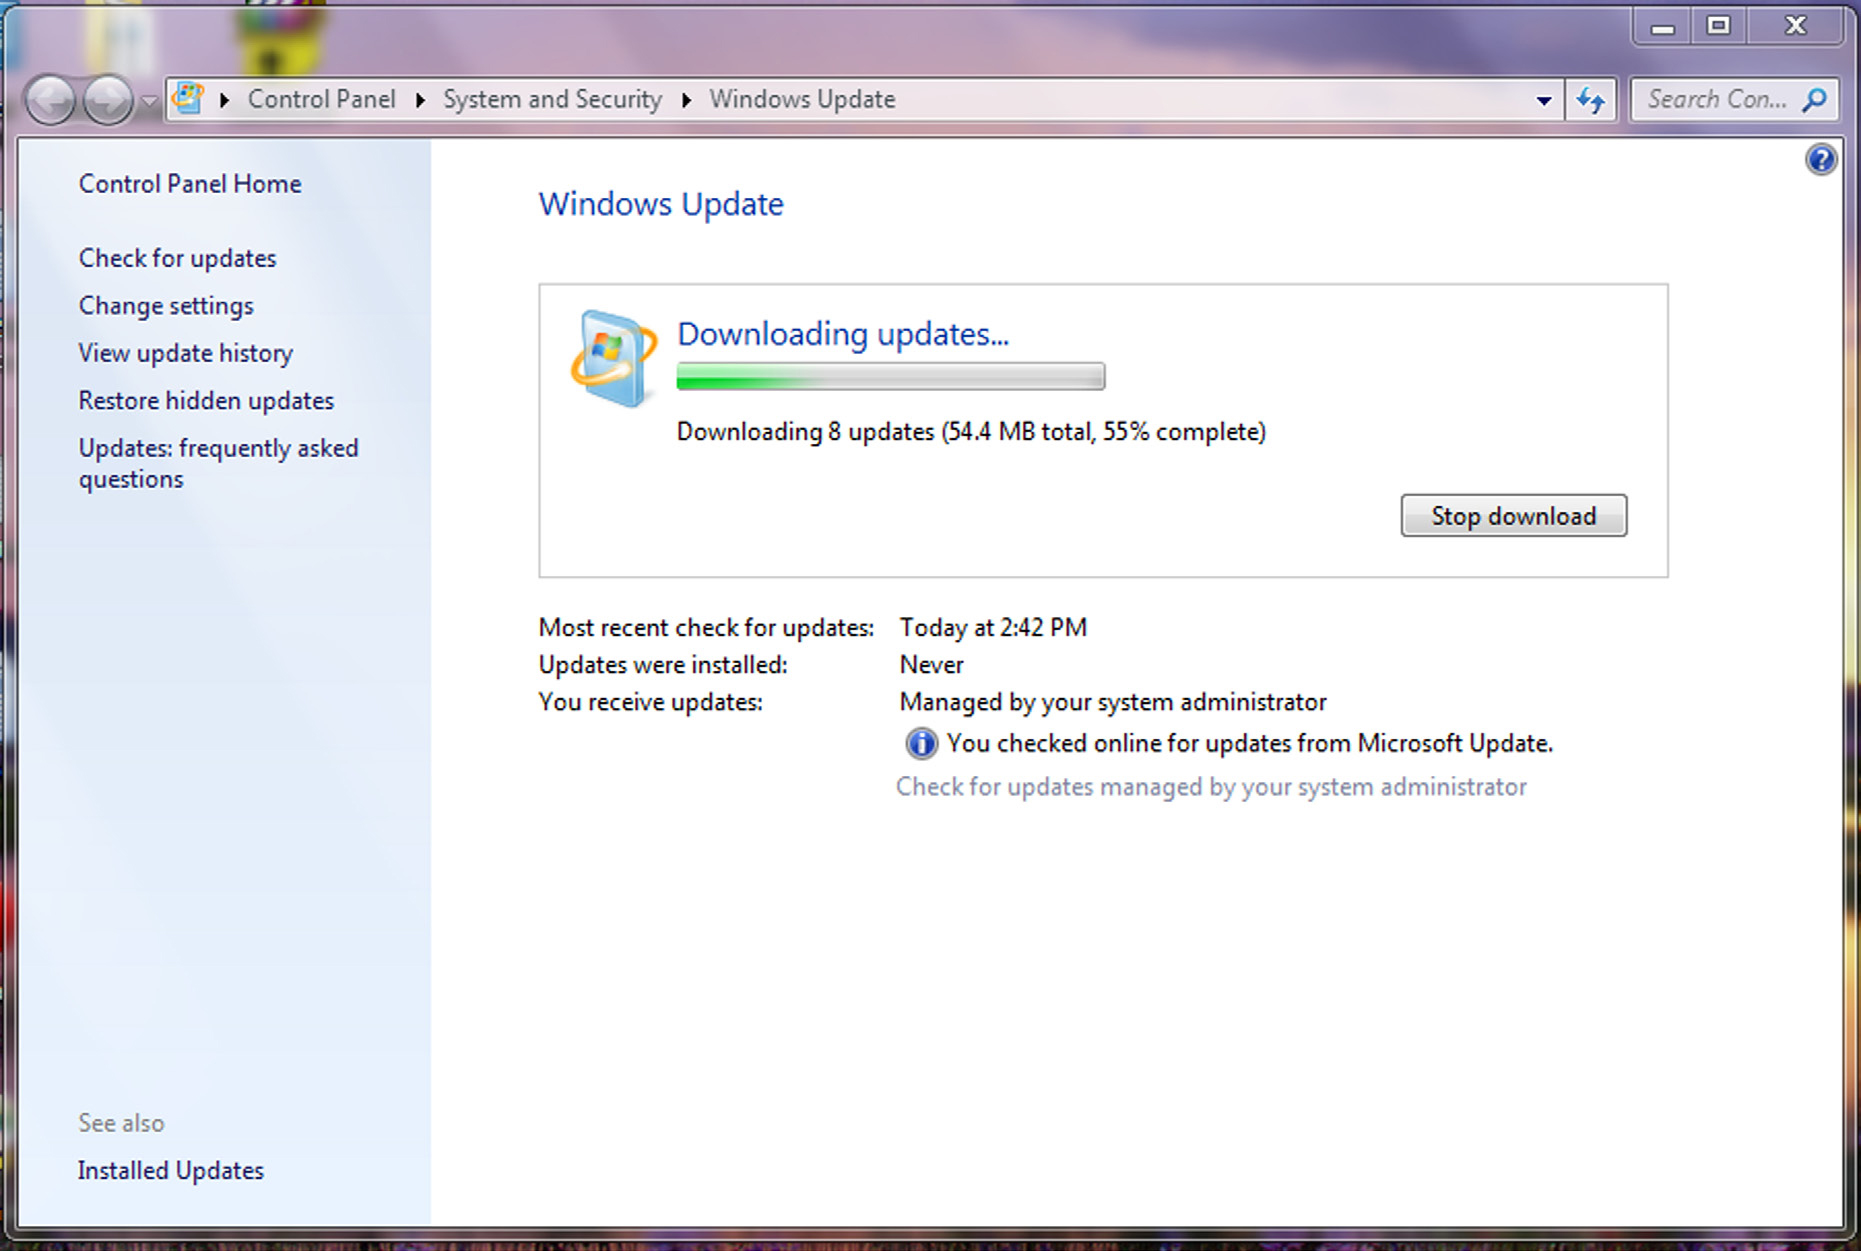 screenshots of windows updates